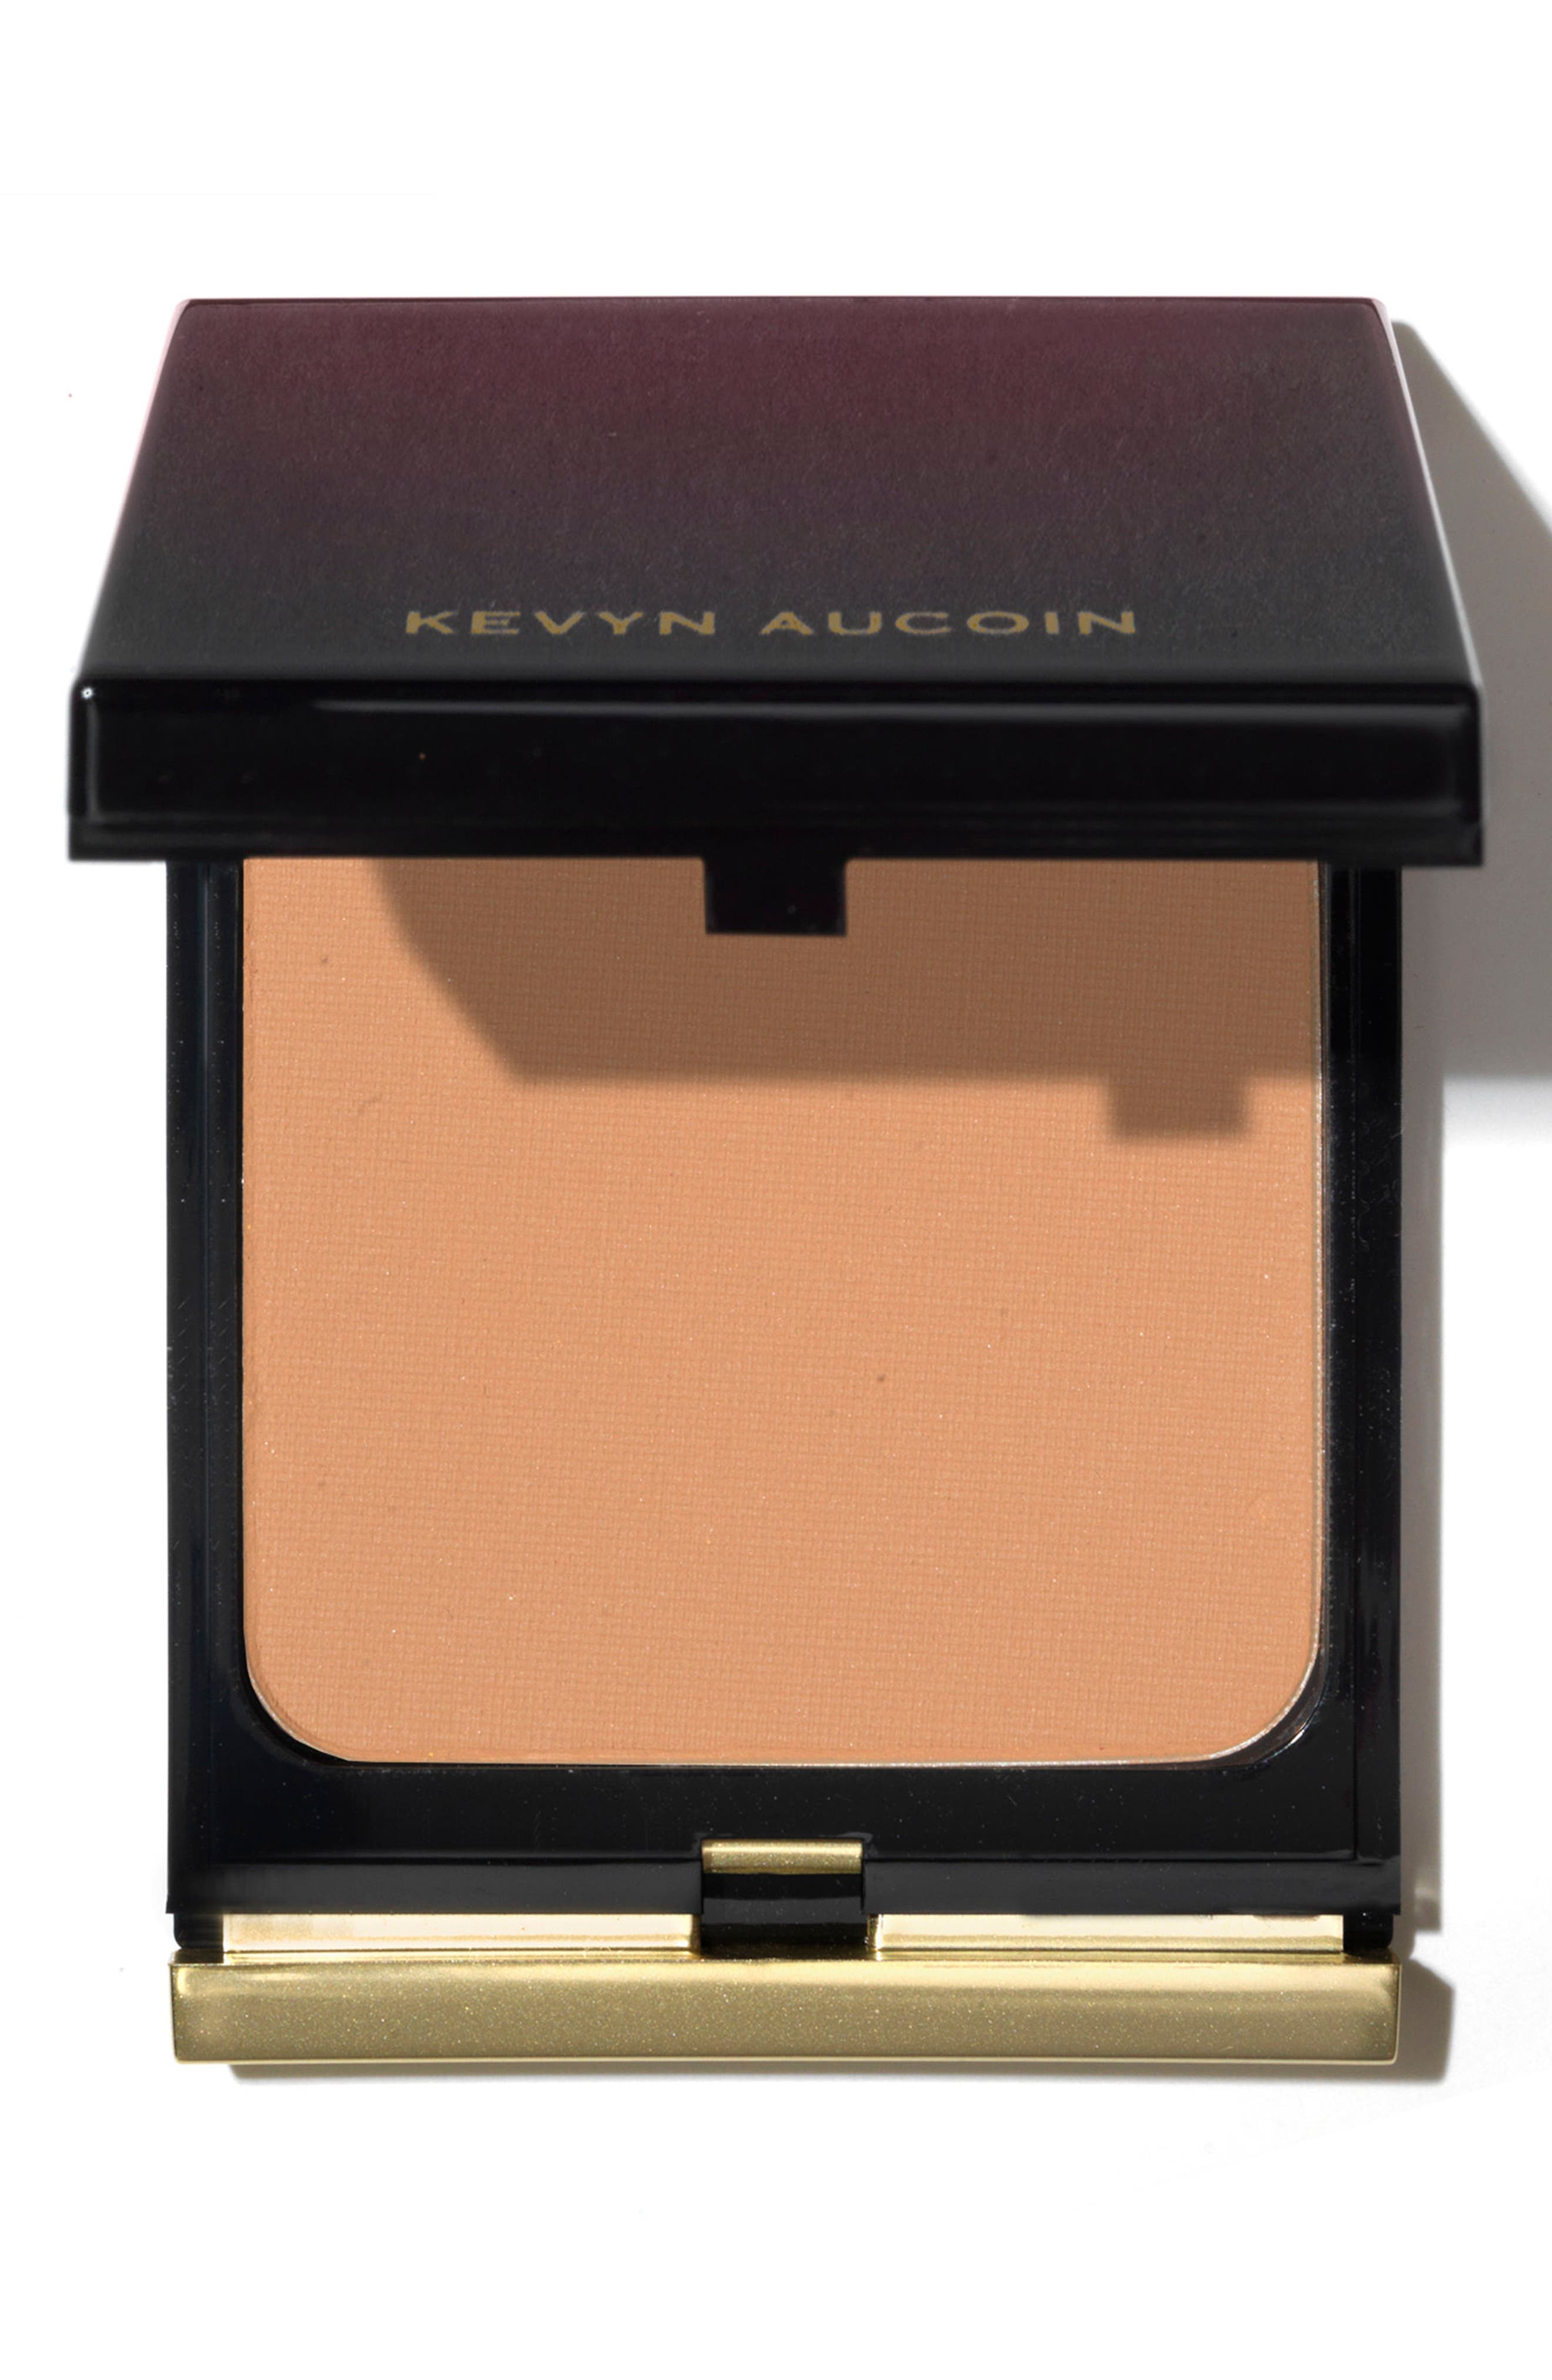 Alternate Image 1 Selected - SPACE.NK.apothecary Kevyn Aucoin Beauty The Matte Bronzing Veil